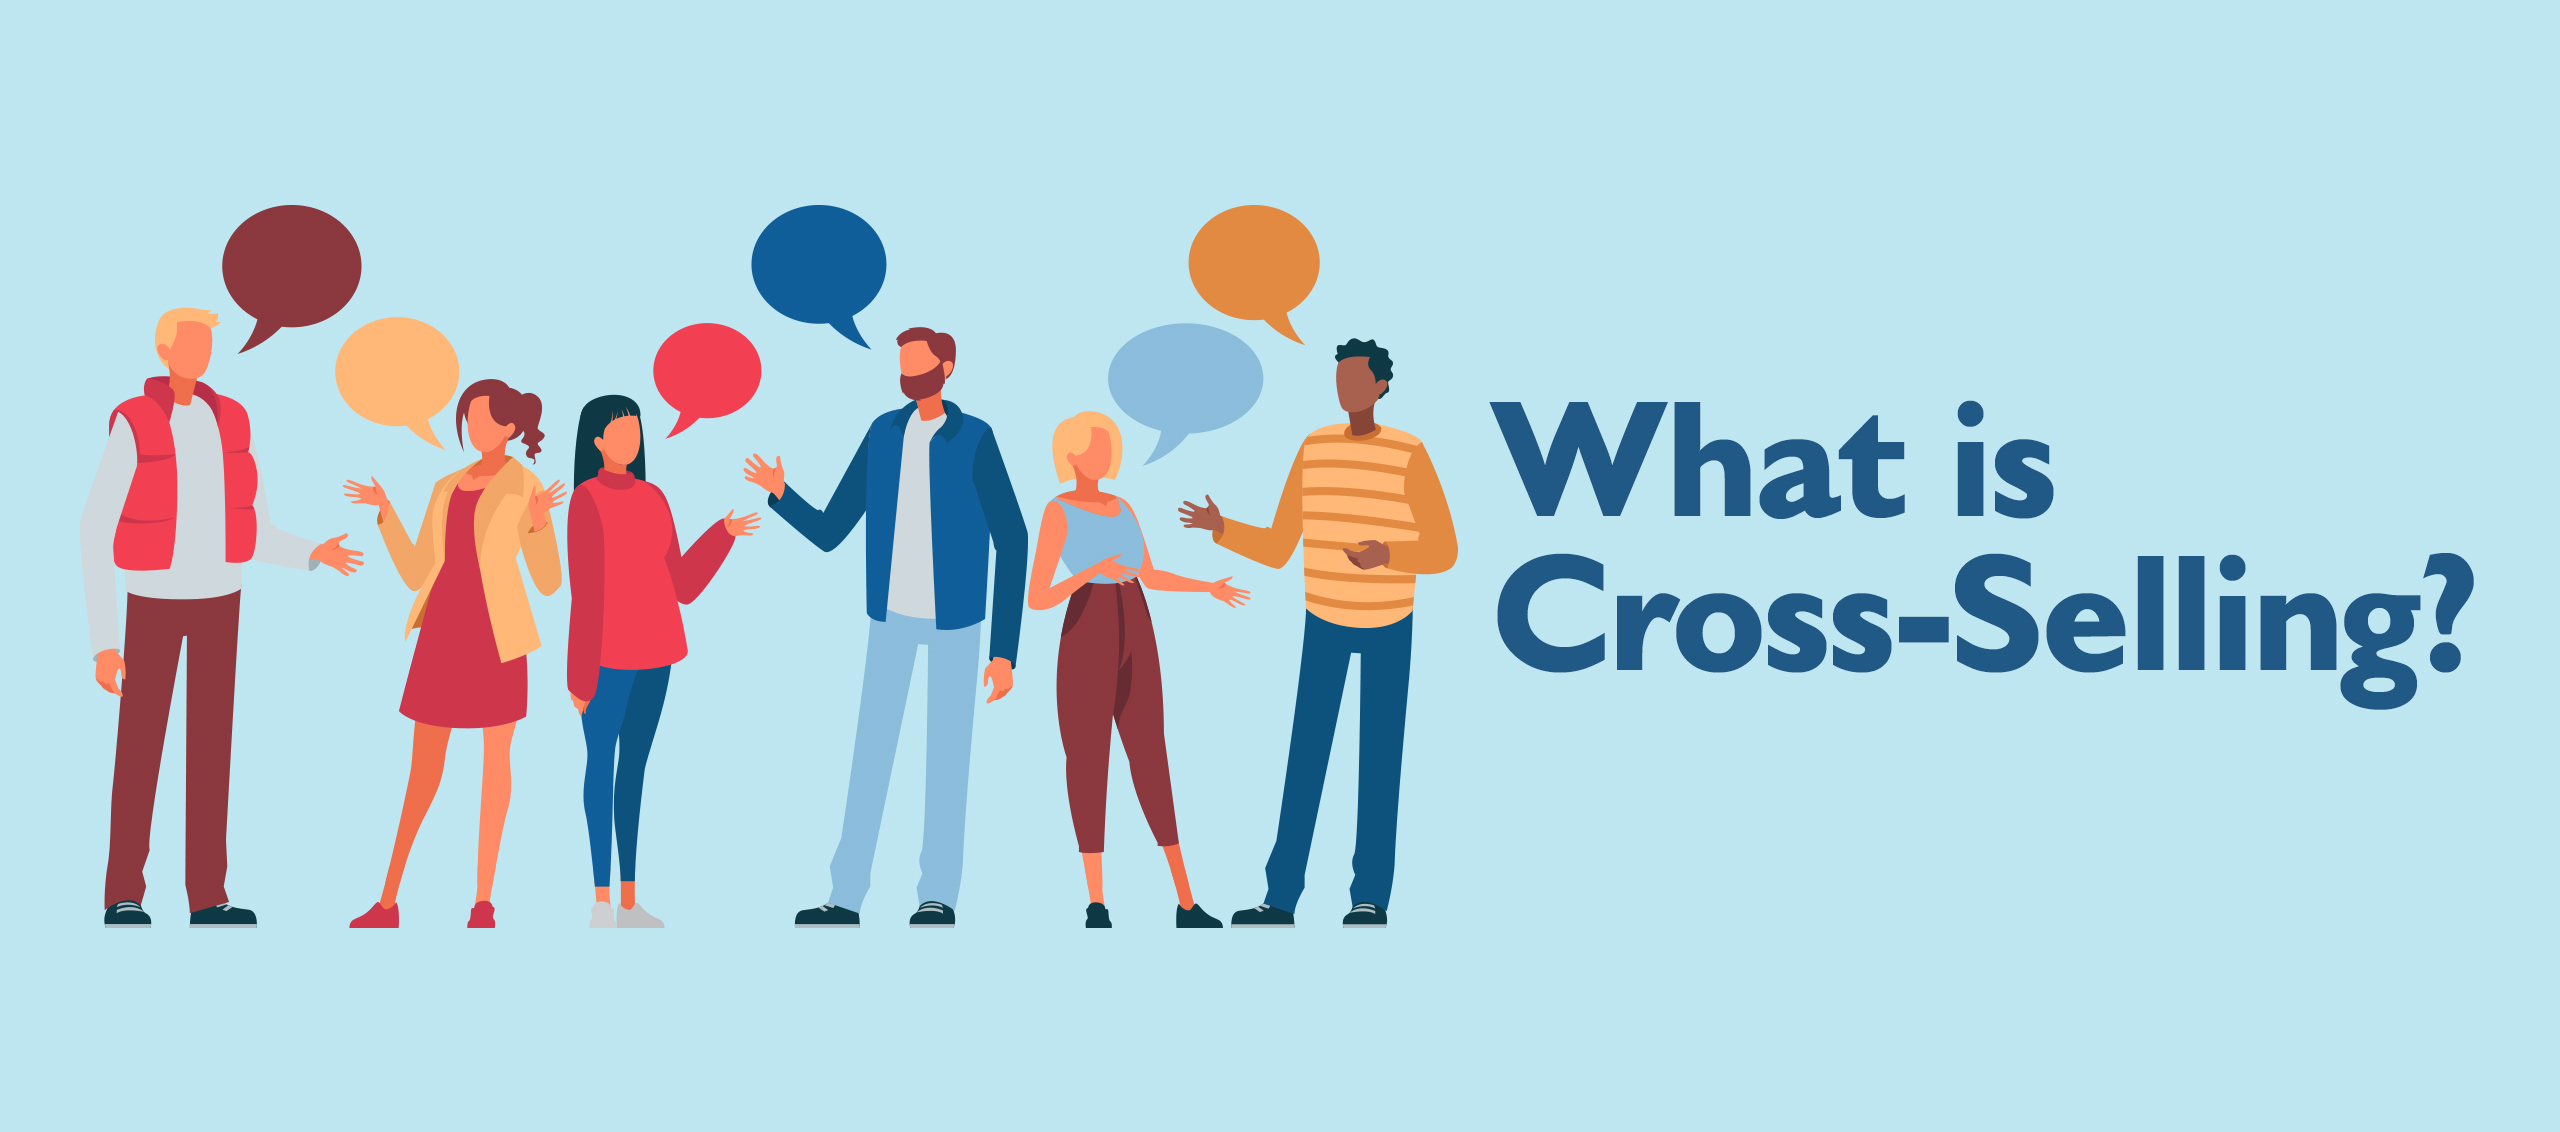 What is Cross-Selling?